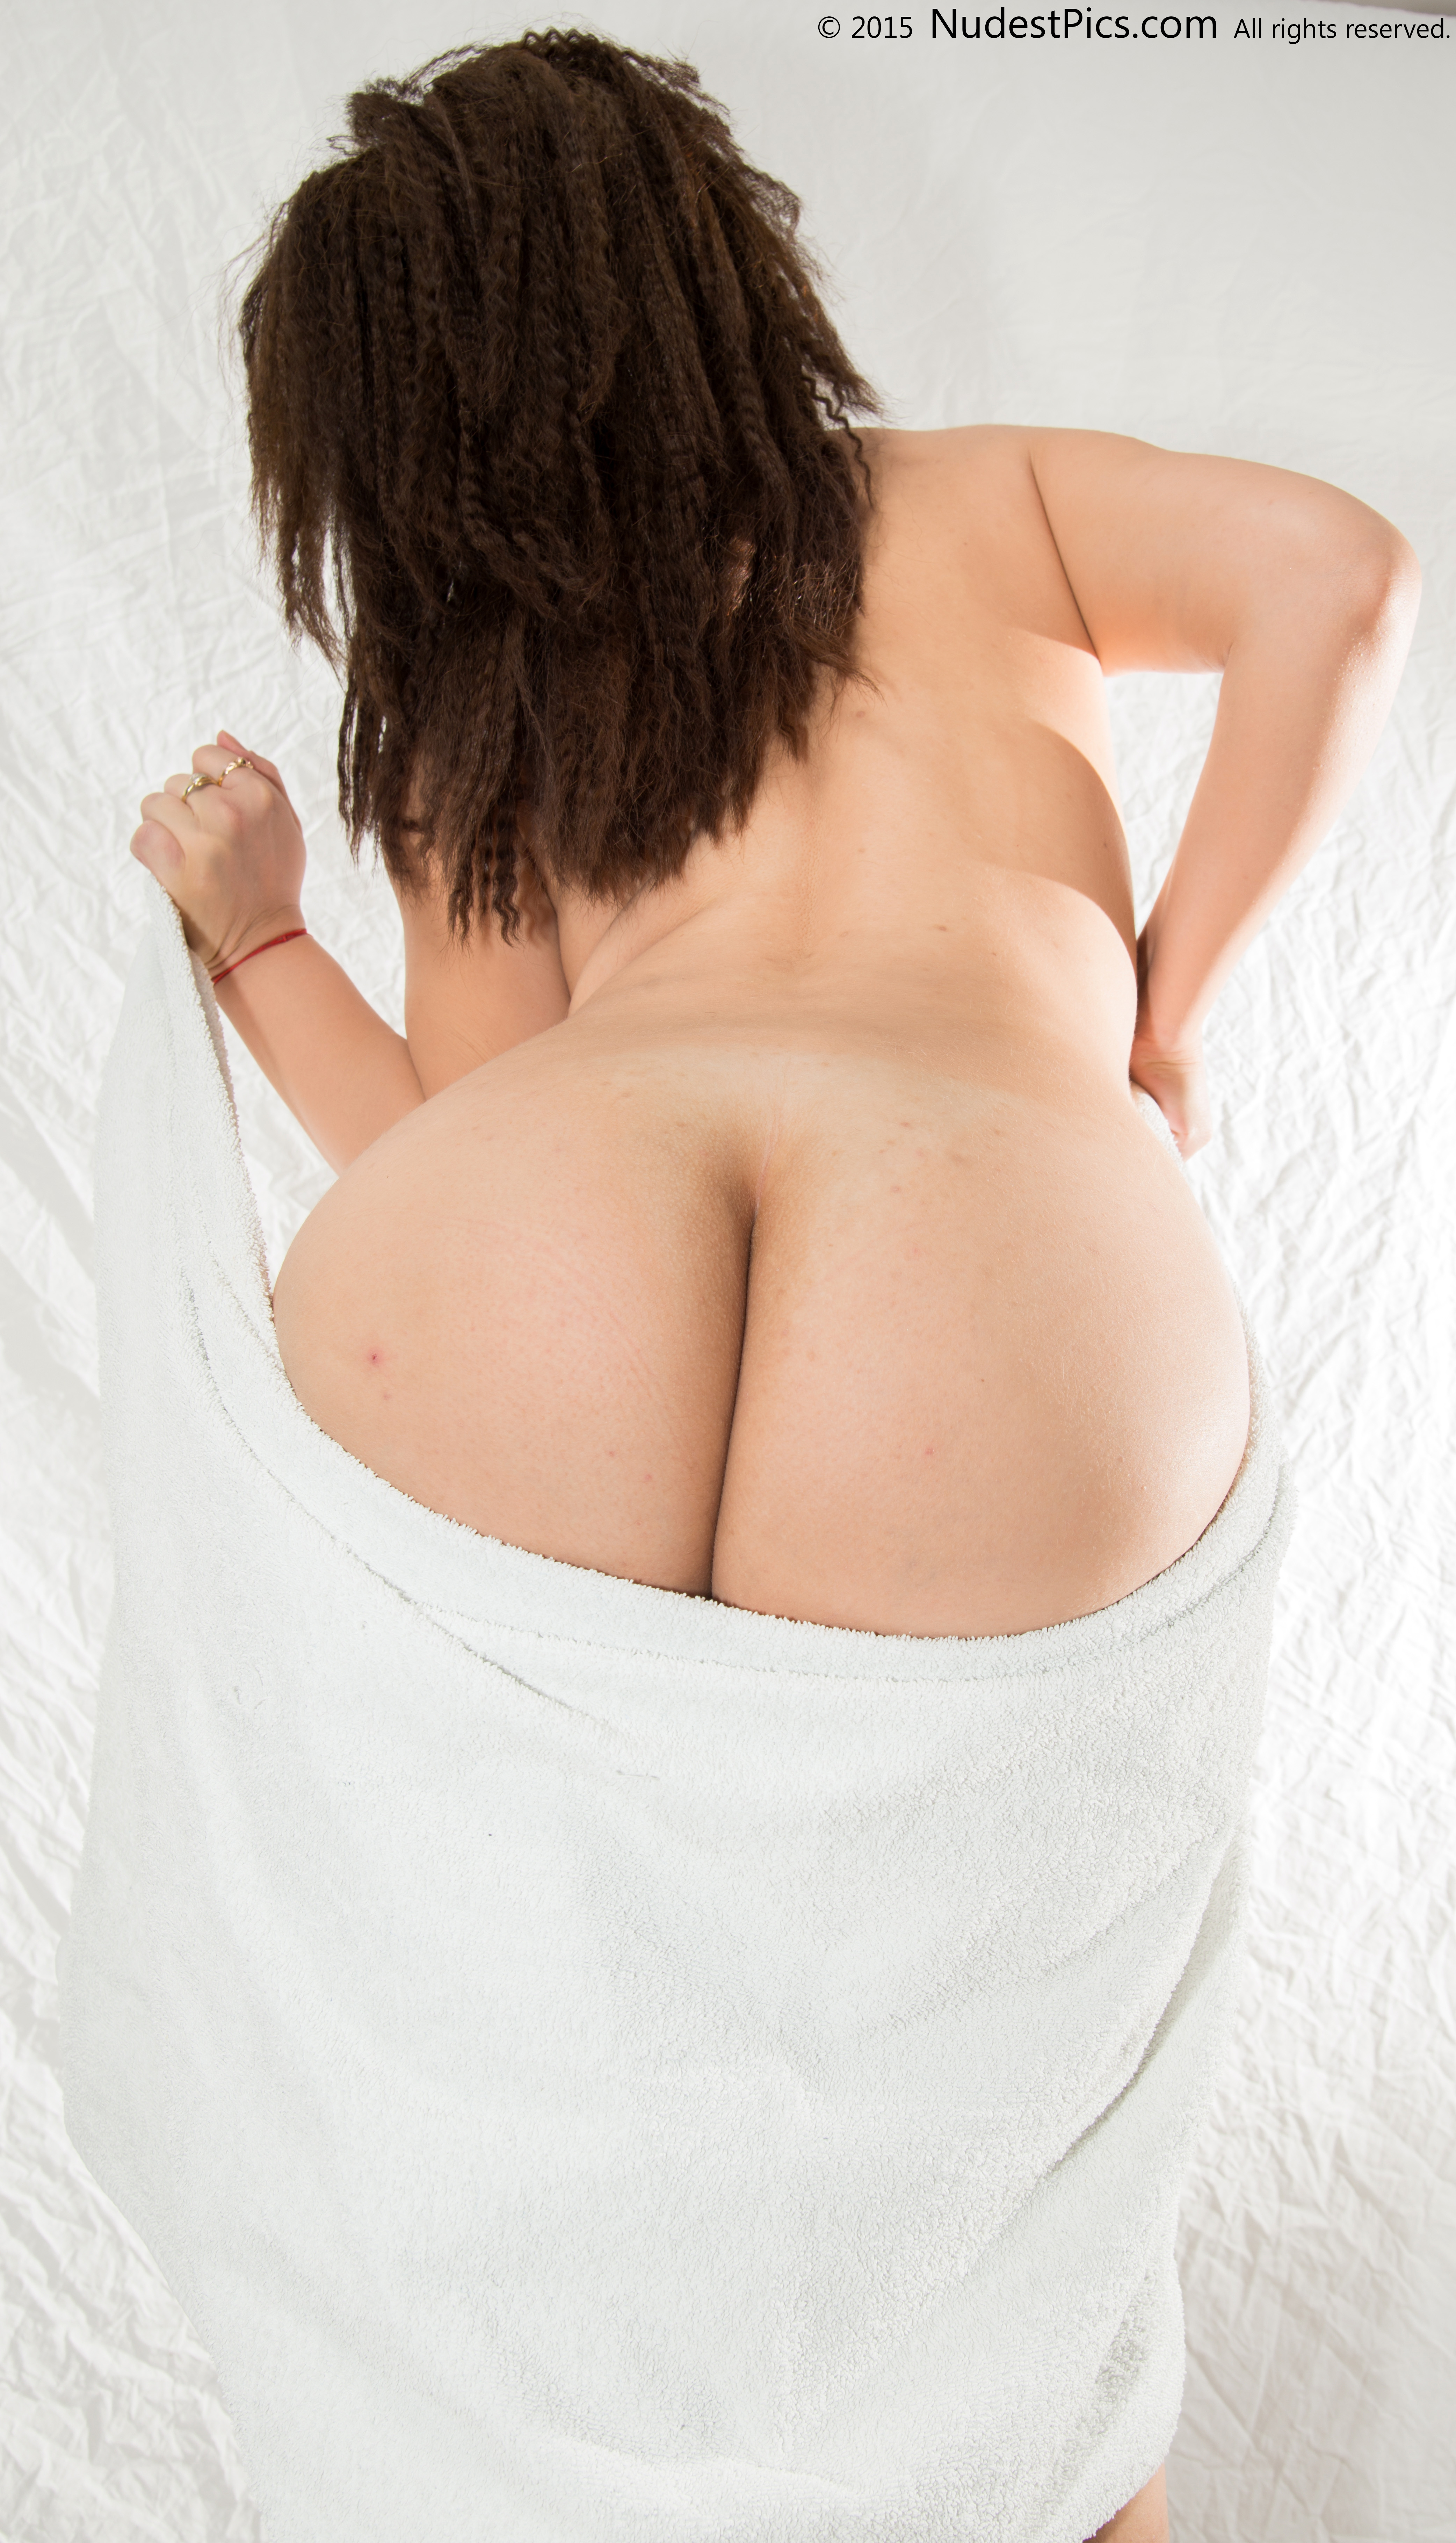 Big Round White Buttocks with Towel